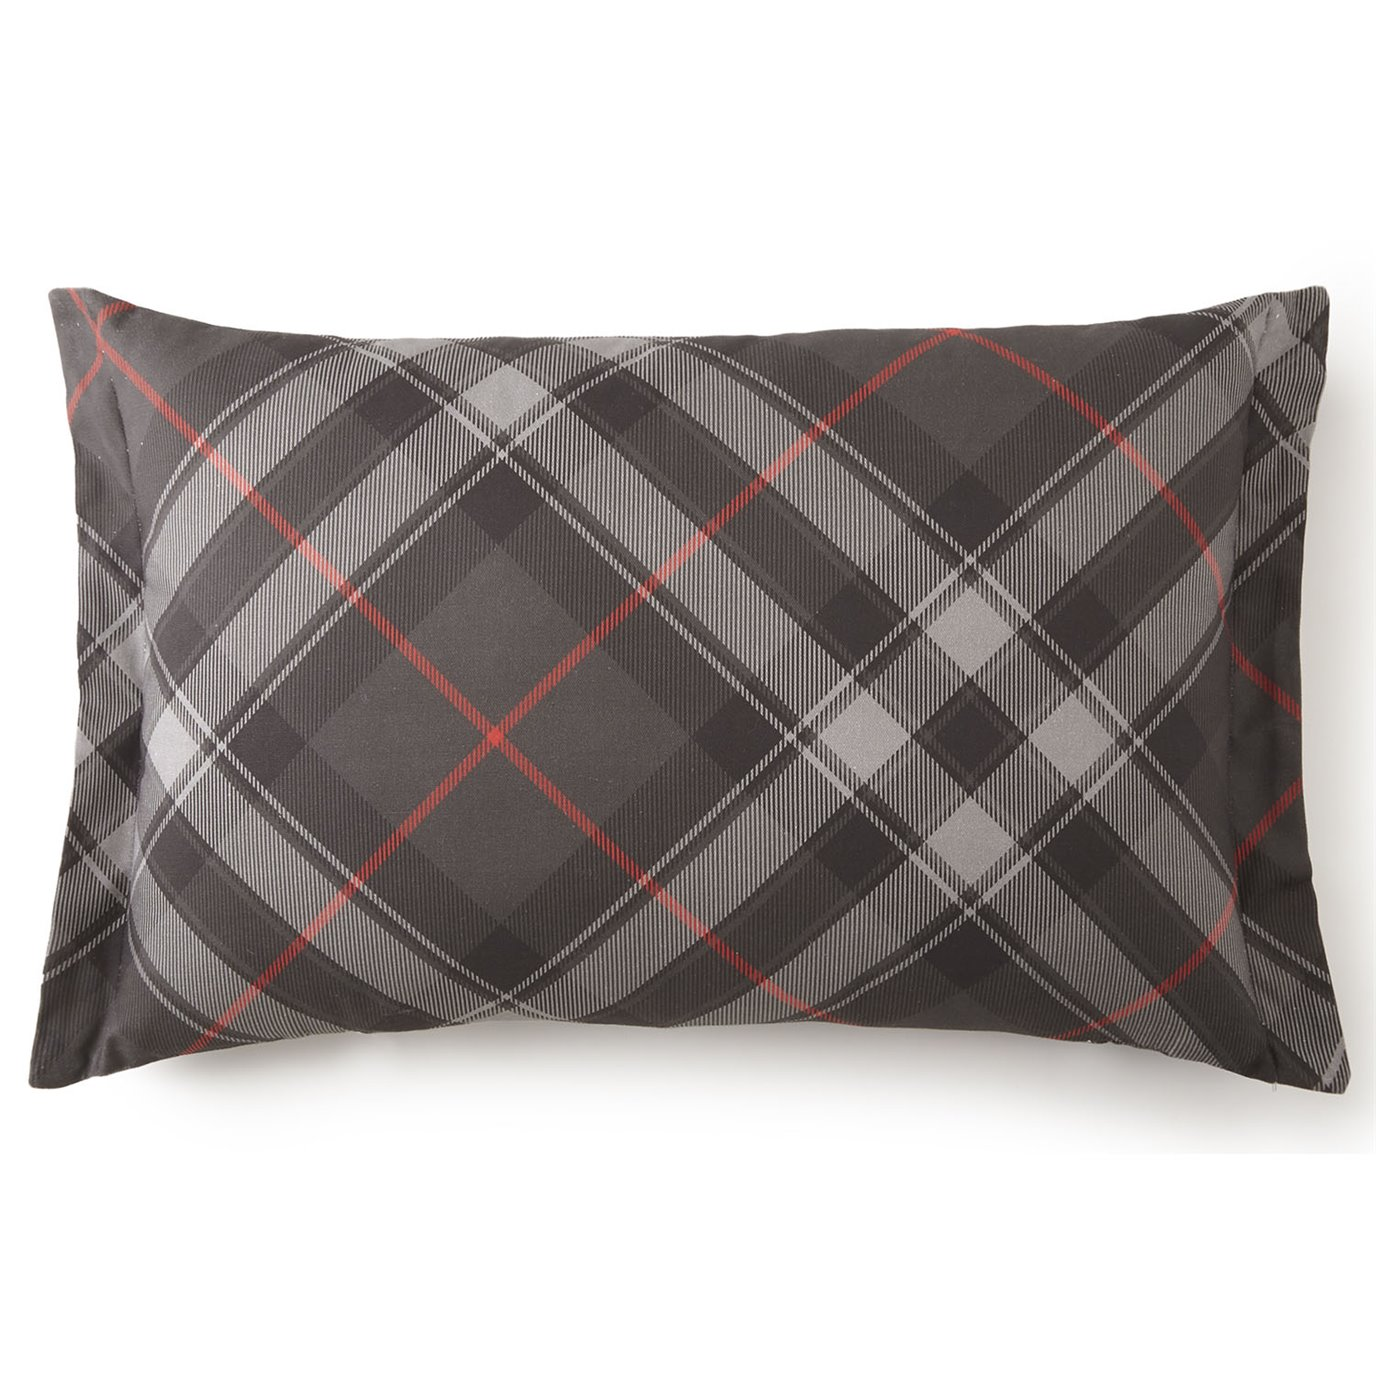 Long Rectangular Decorative Pillows : Poppy Plaid Long Rectangle Pillow - Plaid Fabric by Colcha Linens PC Fallon Co